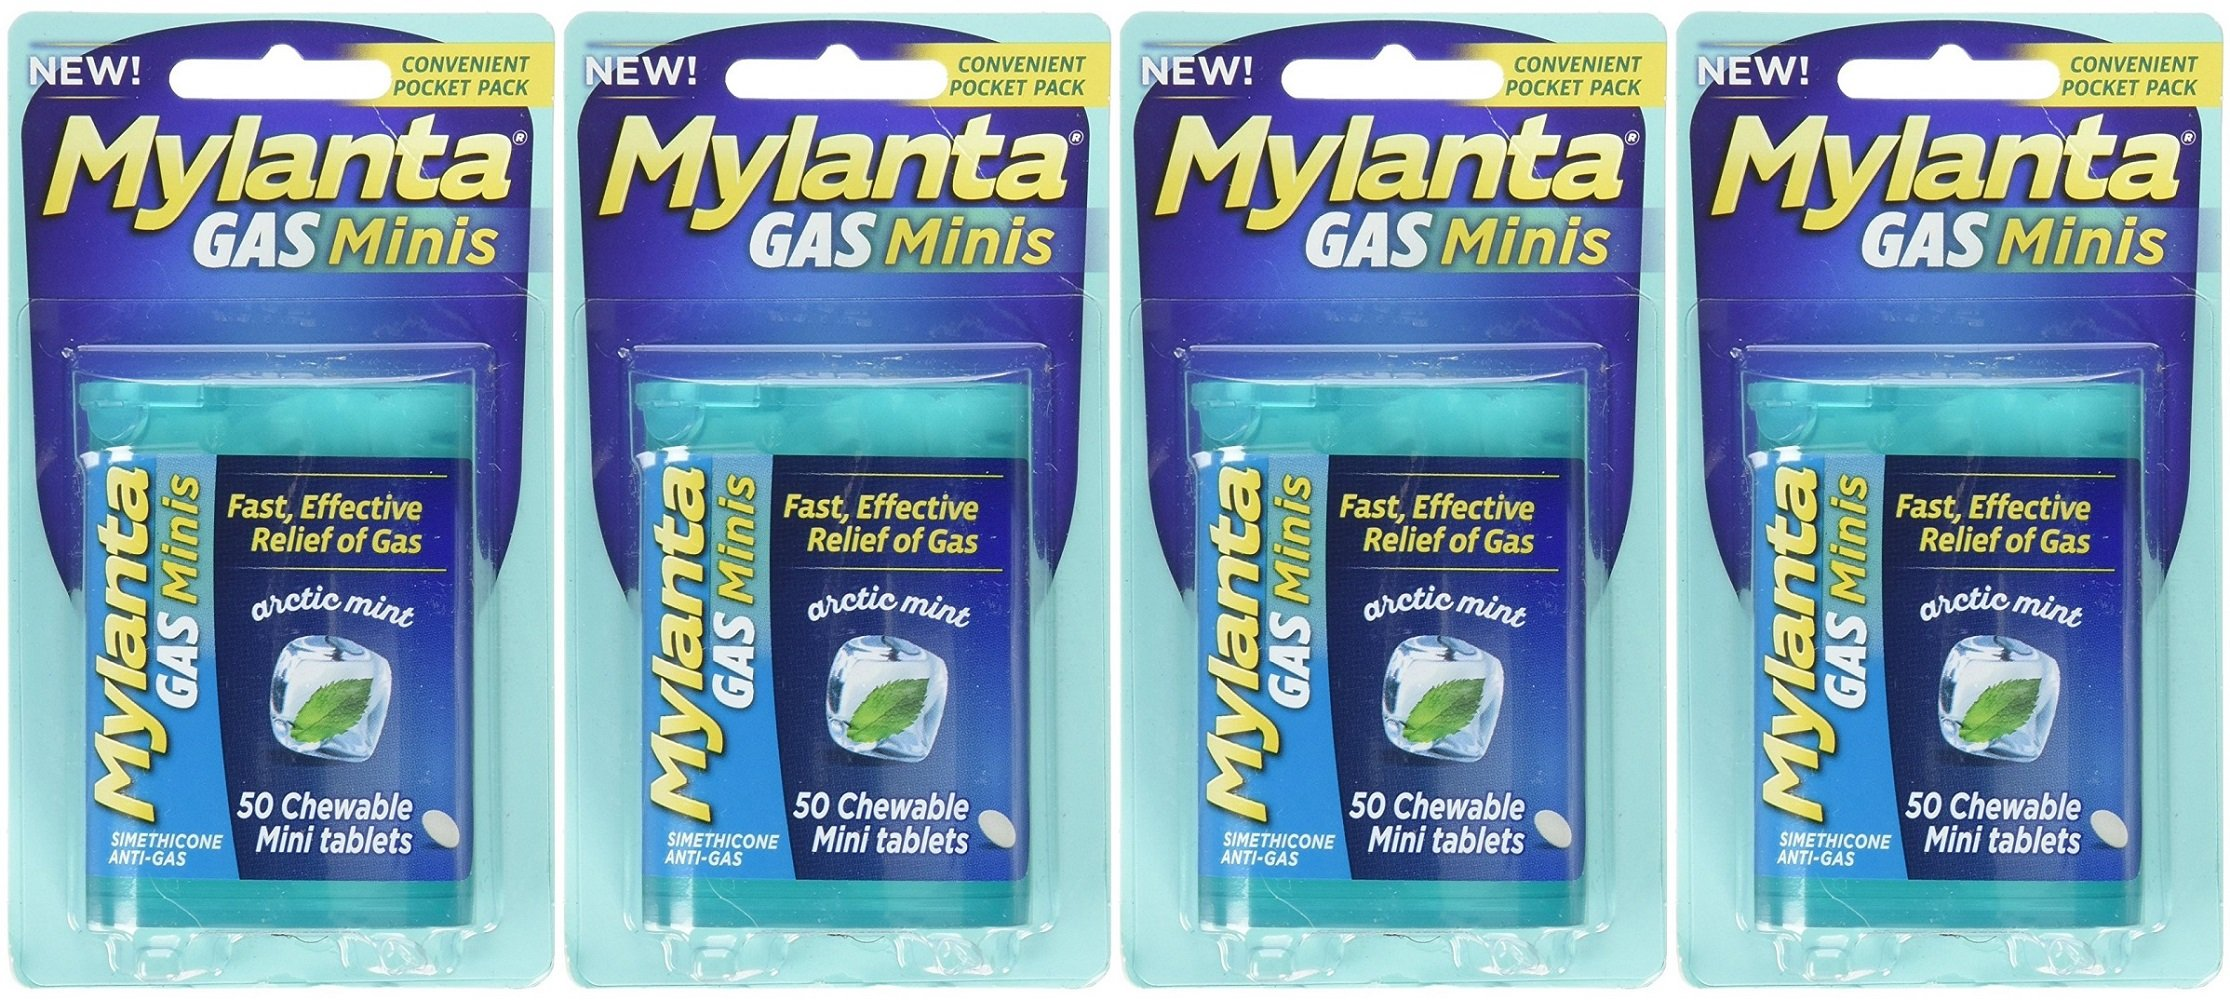 Mylanta Gas Mini Chewable Tablets, Arctic Mint 50 Count (4 Pack) by Mylanta